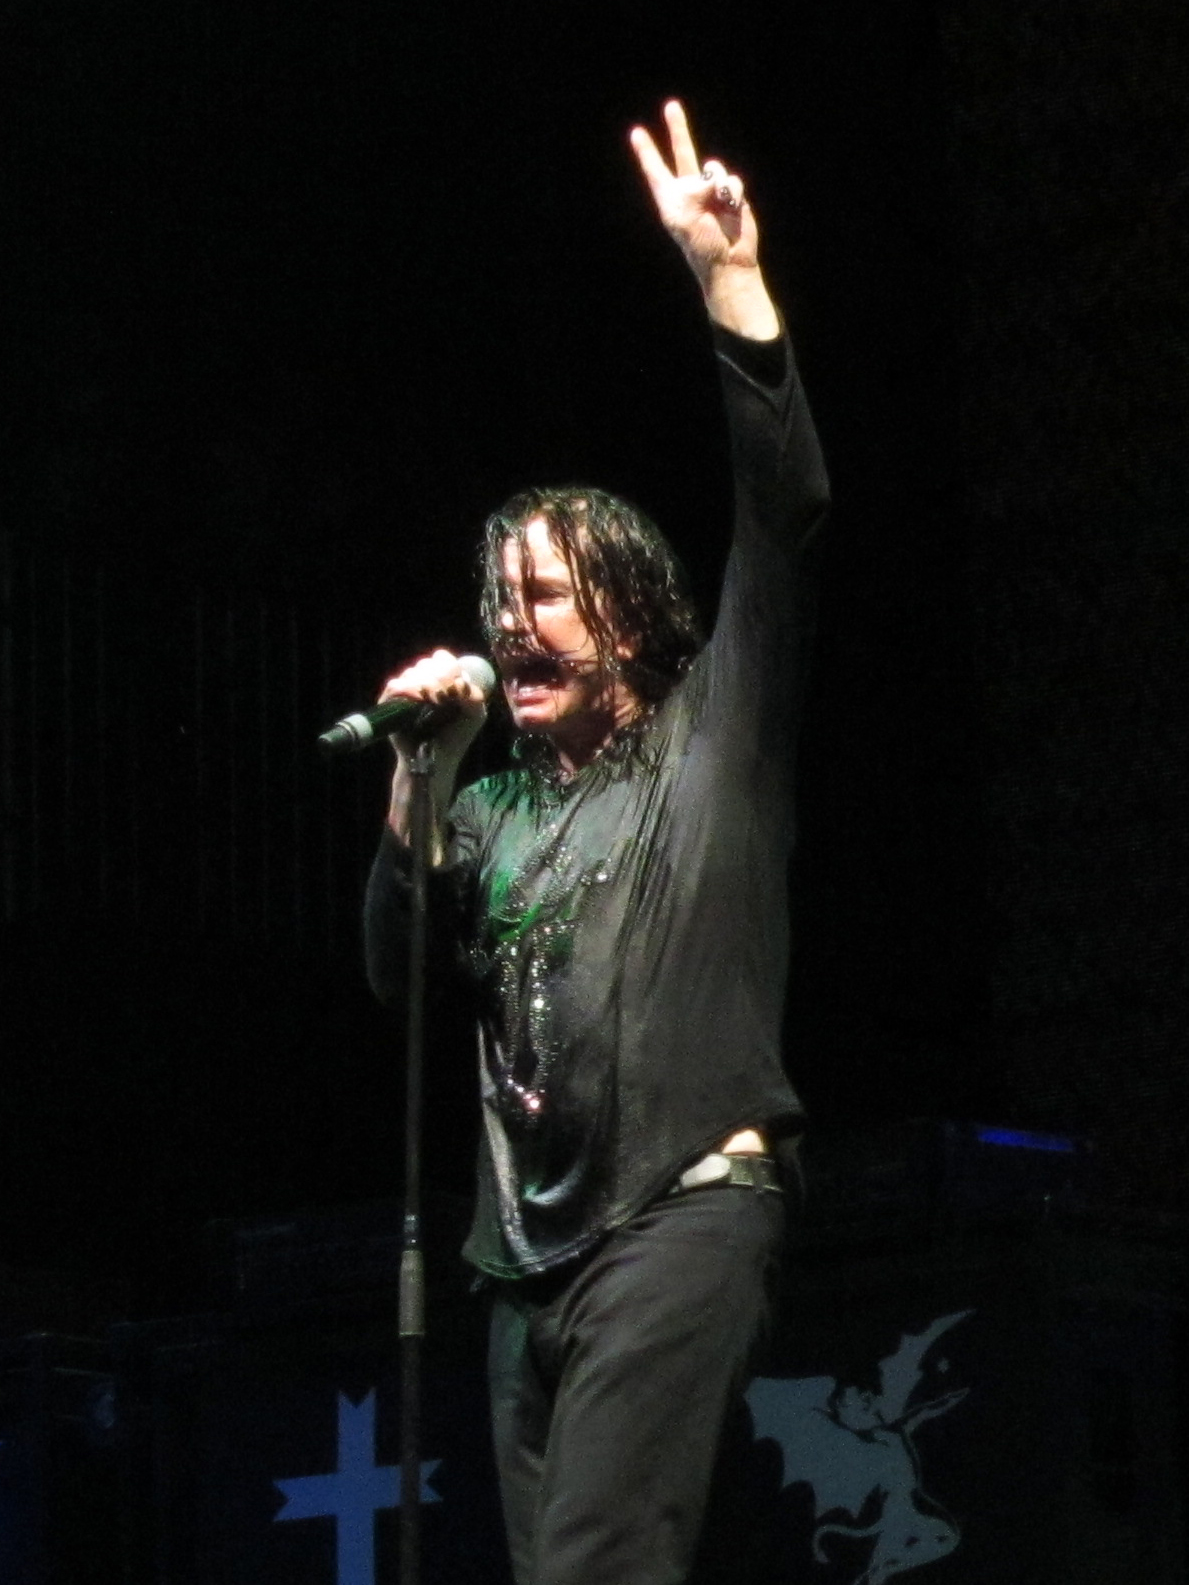 August 3, 2012 in Chicago, IL